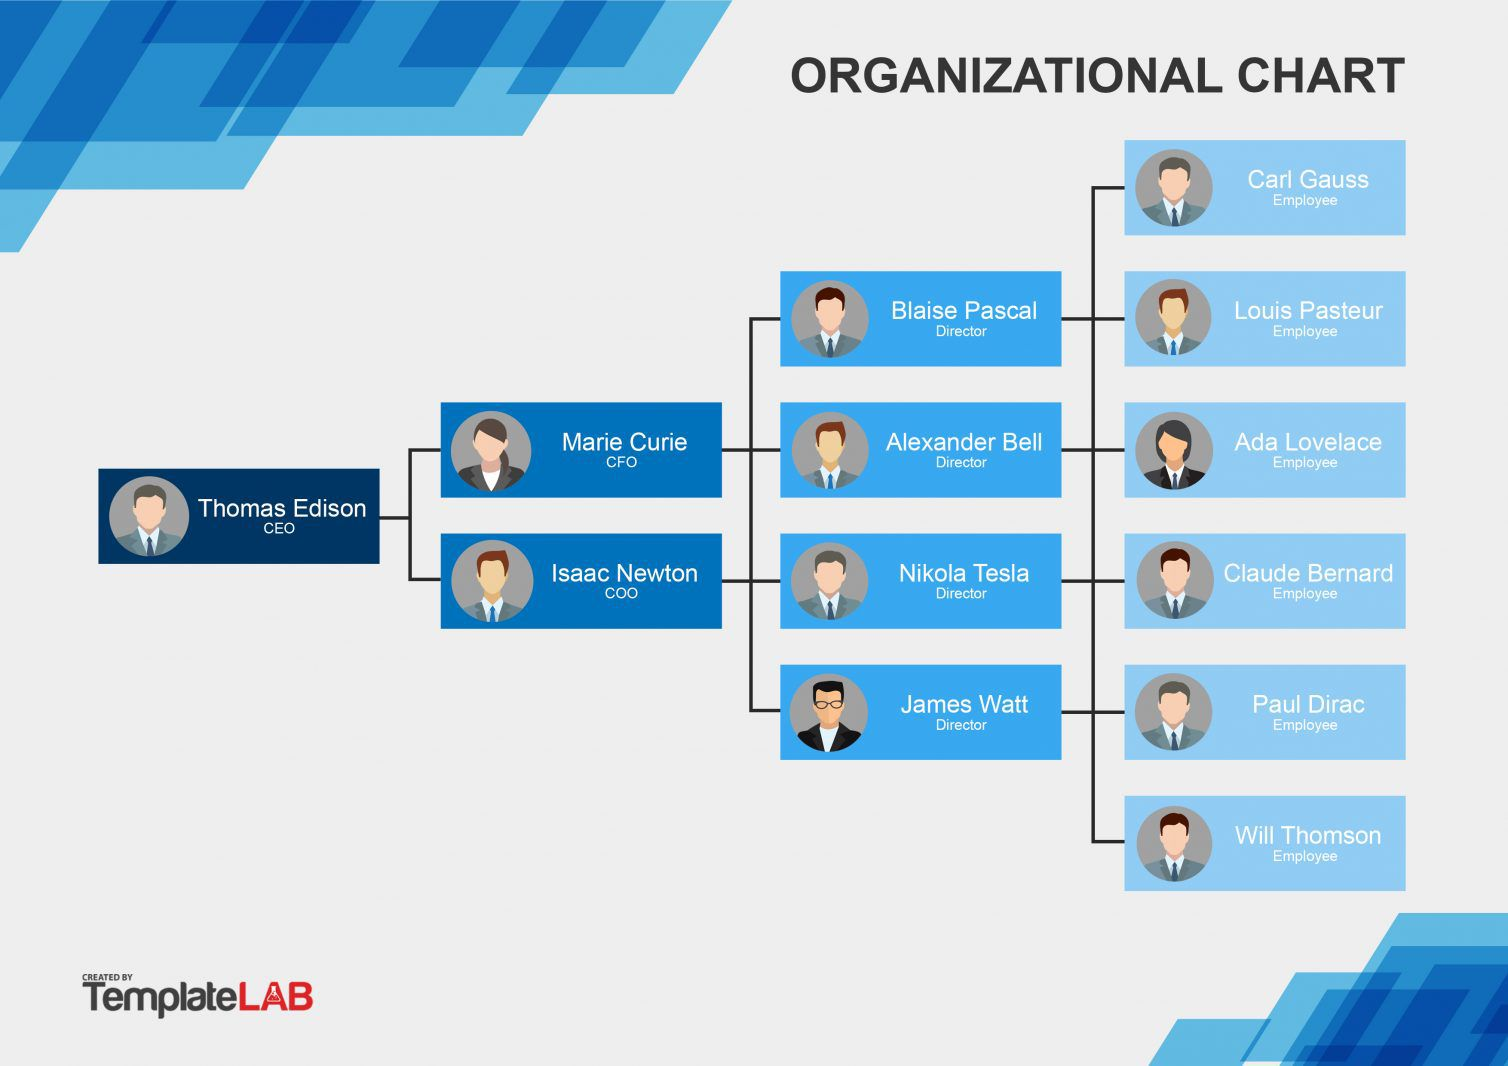 009 Incredible Microsoft Organisation Chart Template Inspiration  Visio Organization Excel OfficeFull